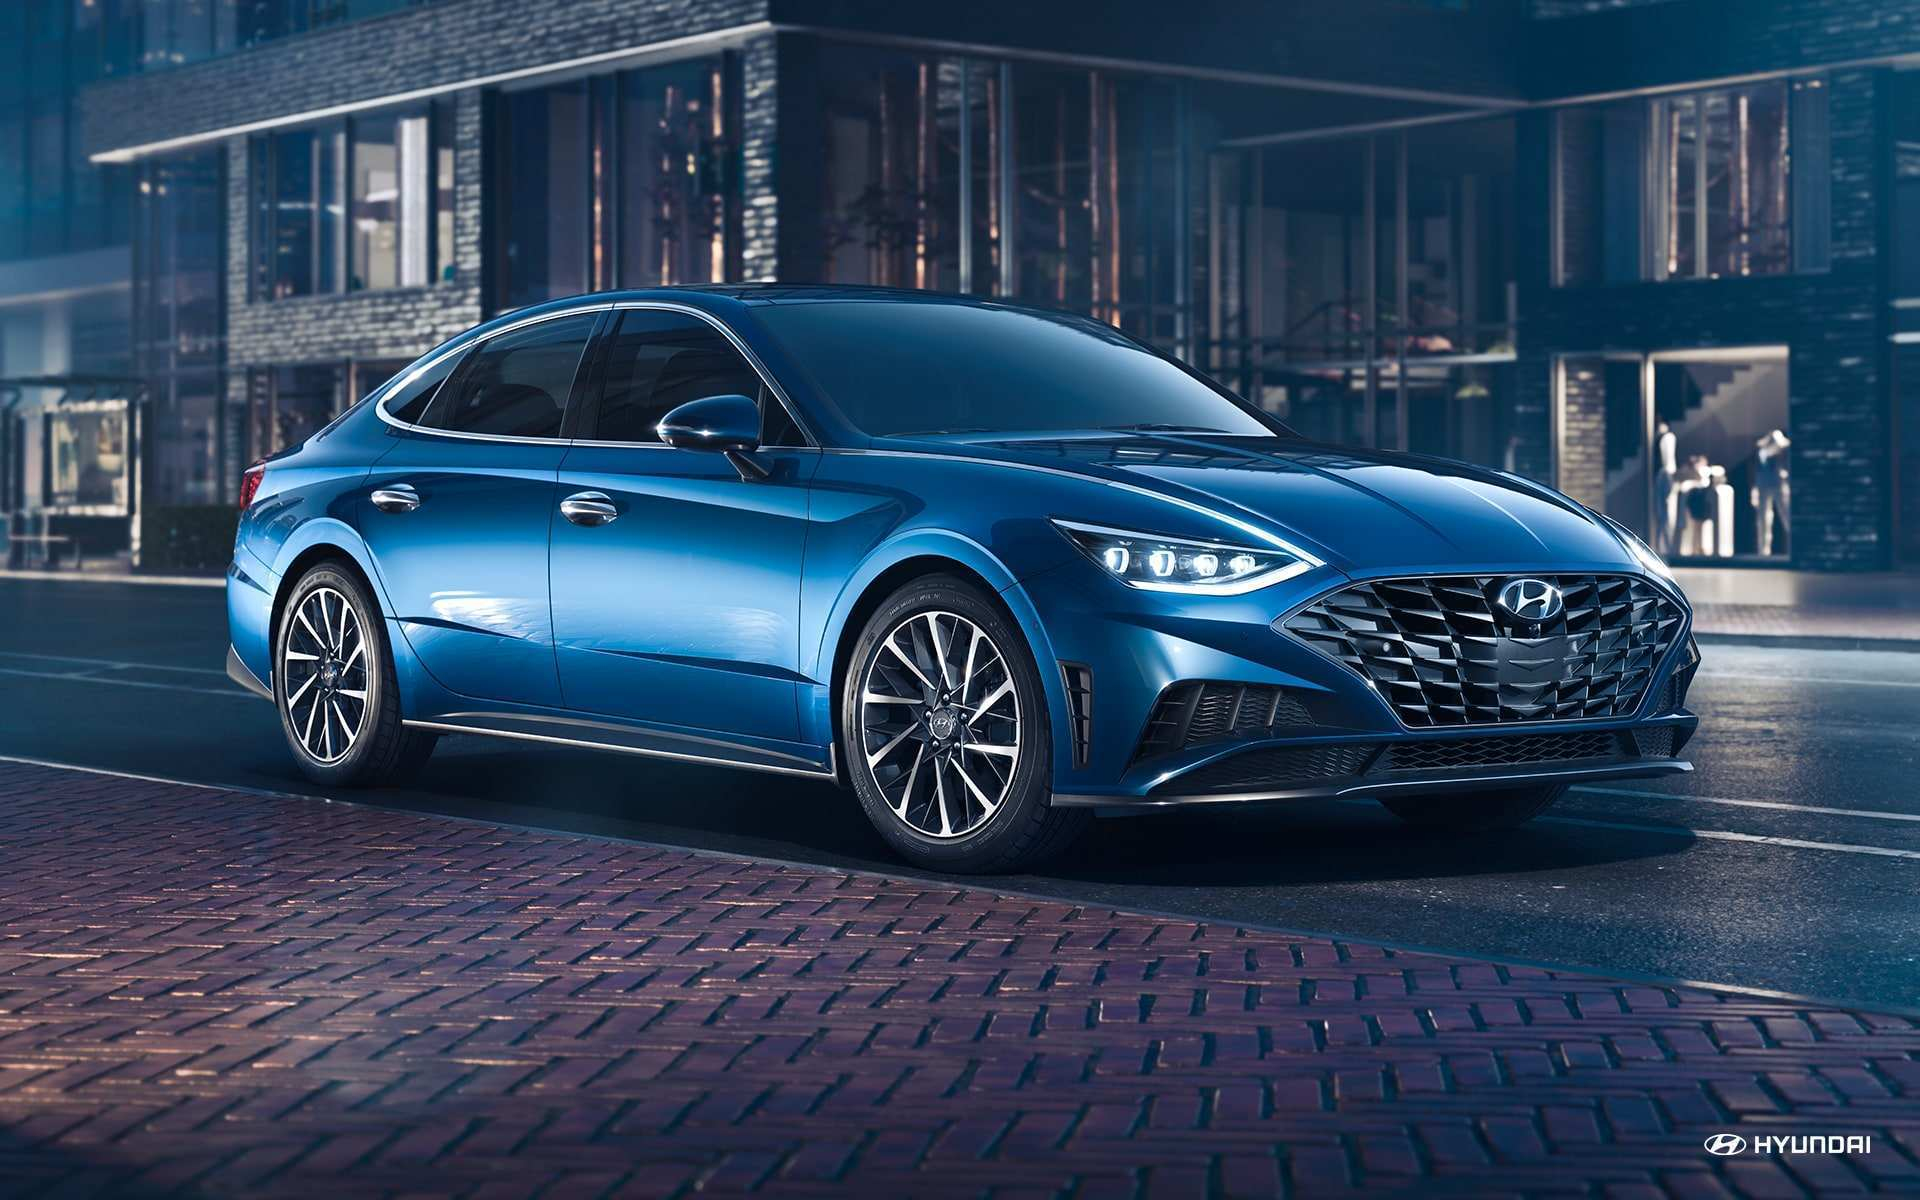 98 New Hyundai Sonata 2020 Redesign